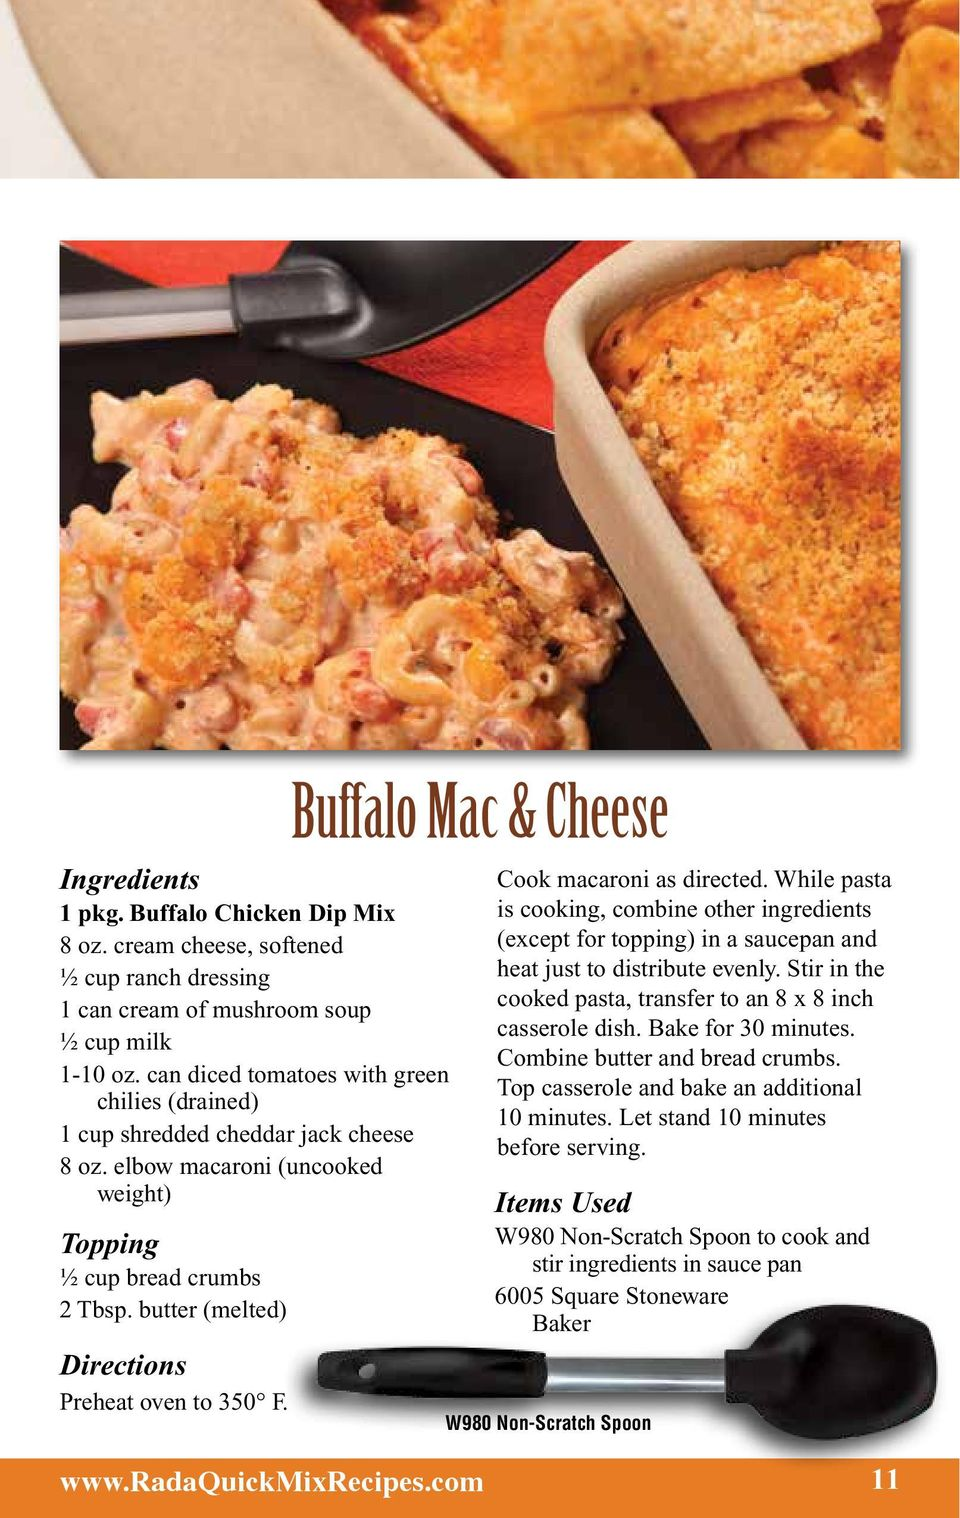 Buffalo Mac & Cheese Cook macaroni as directed. While pasta is cooking, combine other ingredients (except for topping) in a saucepan and heat just to distribute evenly.